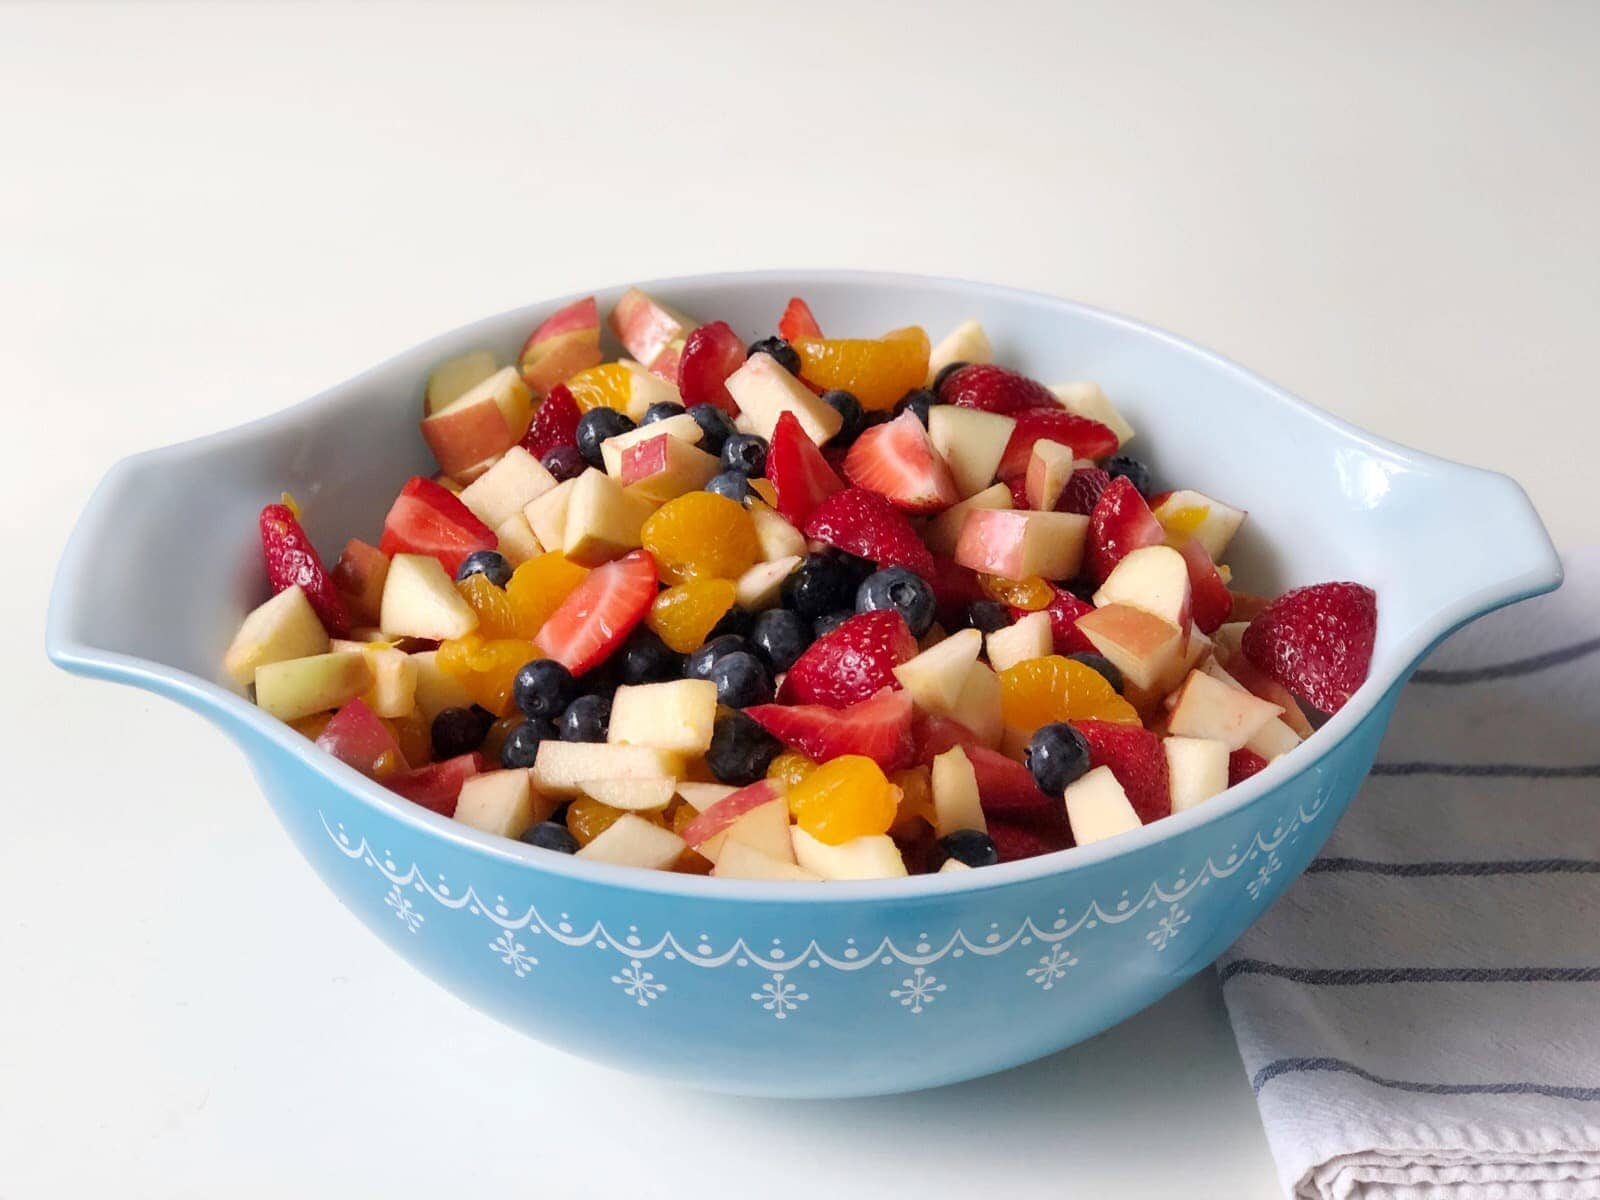 Wondering how to make fruit salad? Use this fruit salad recipe for get-togethers, parties, a side dish for grilling out, or a snack on the go.